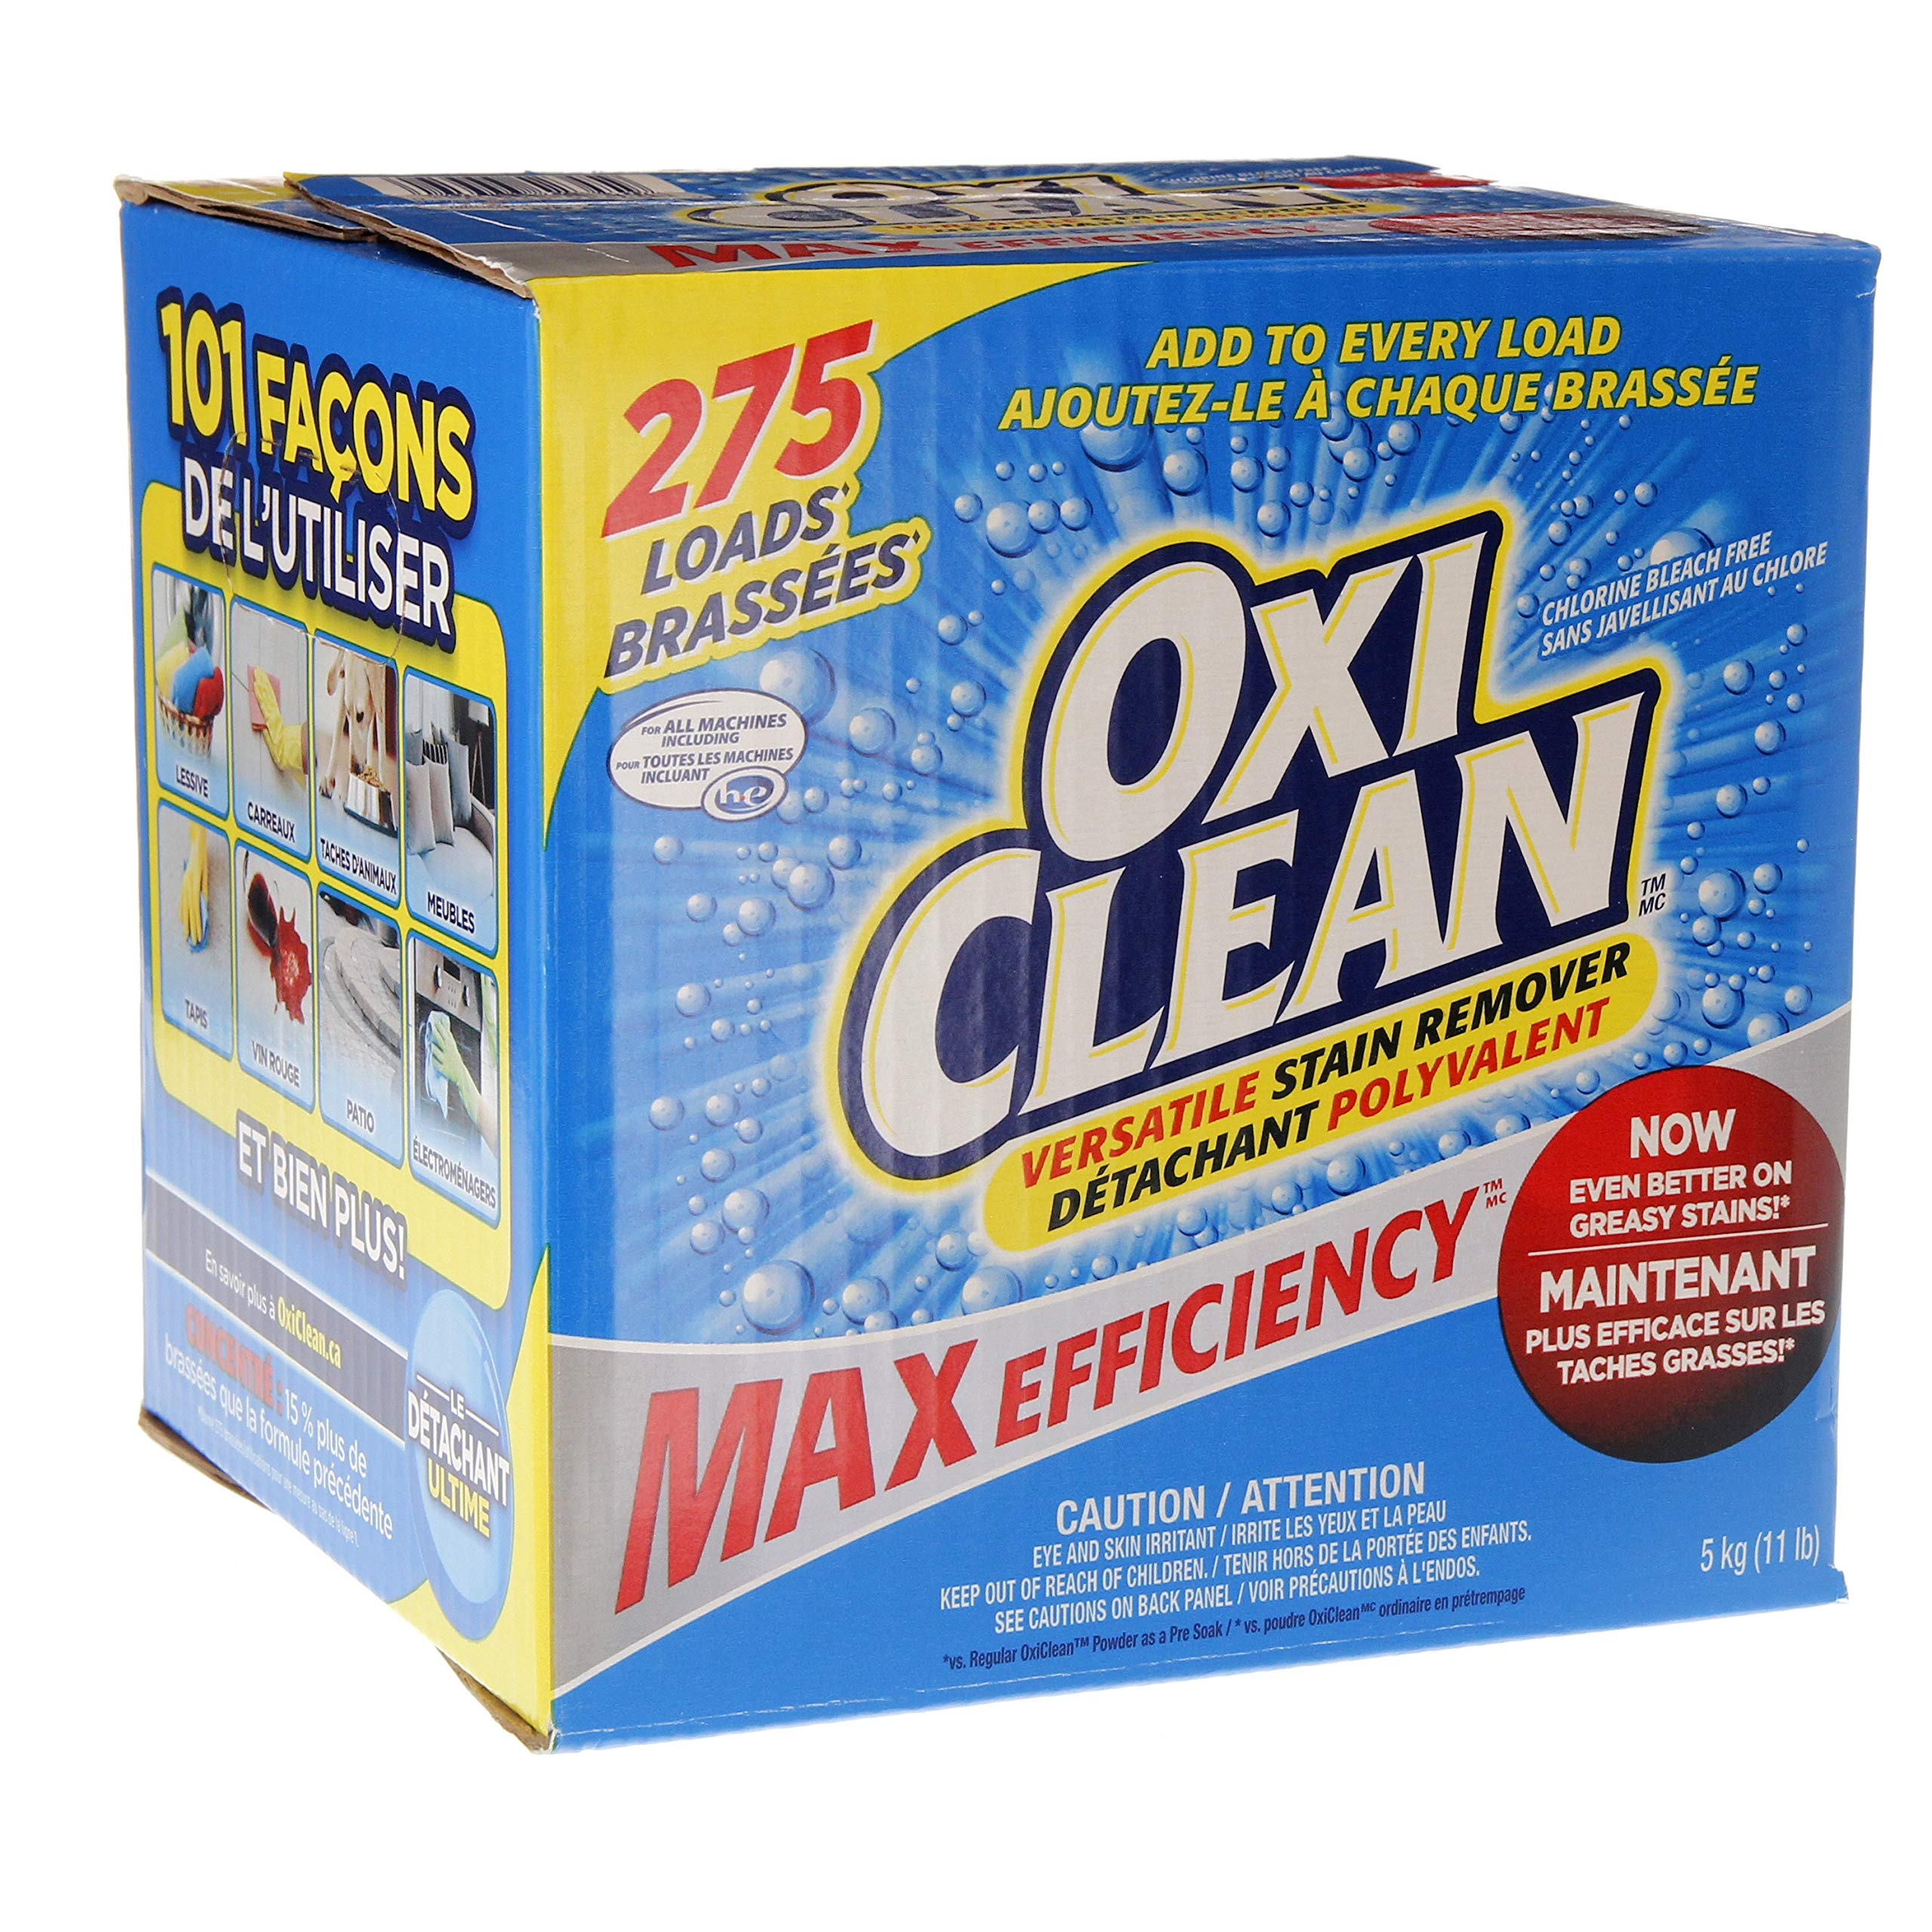 OxiClean Versatile Stain Remover, 275 Loads